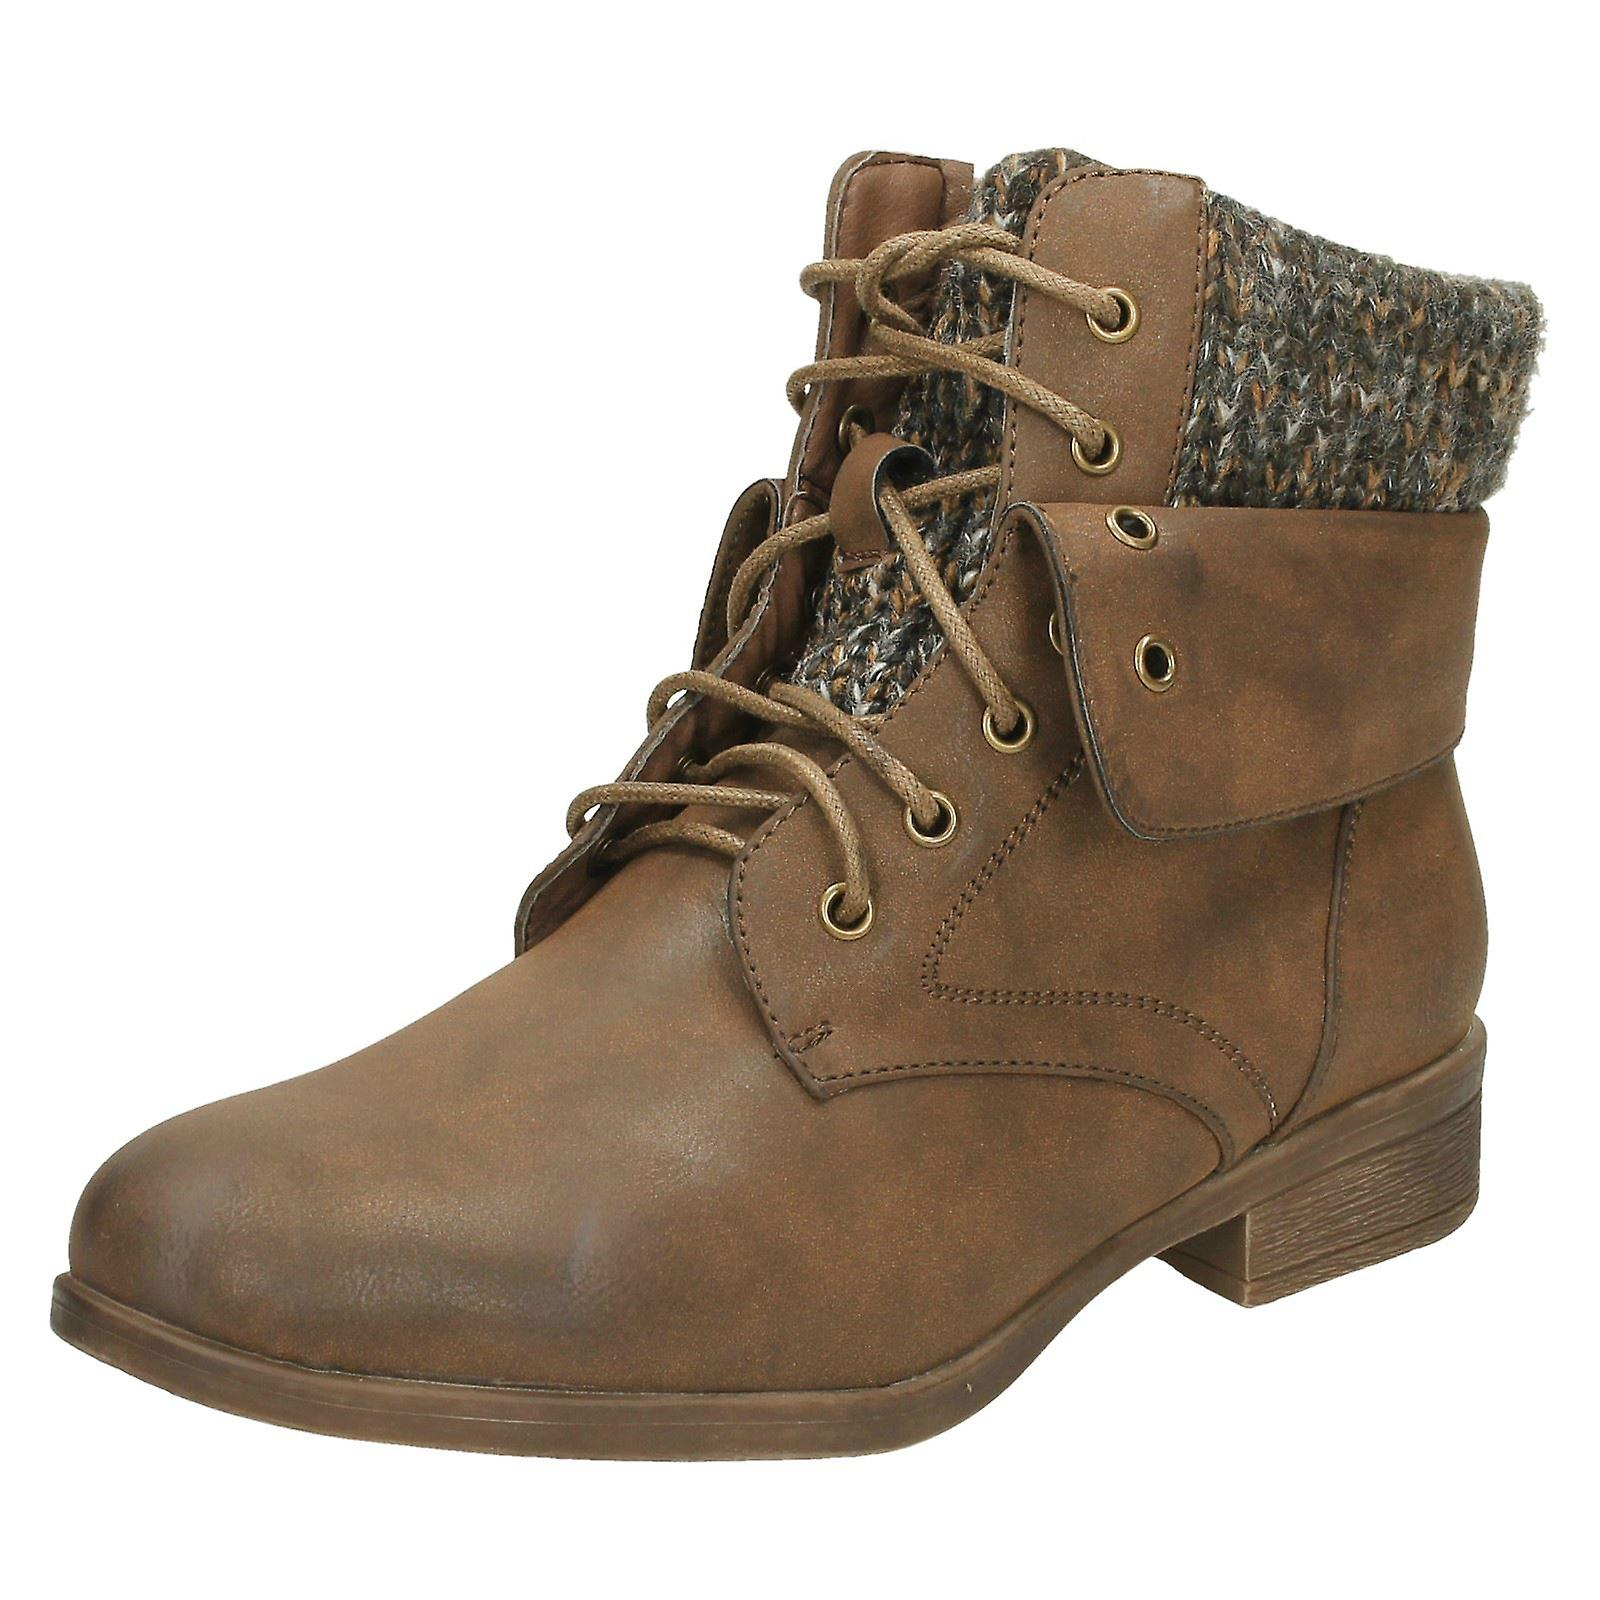 Ladies Spot On Mid Heel Lace Up Ankle Boots F50613 Wg9KL